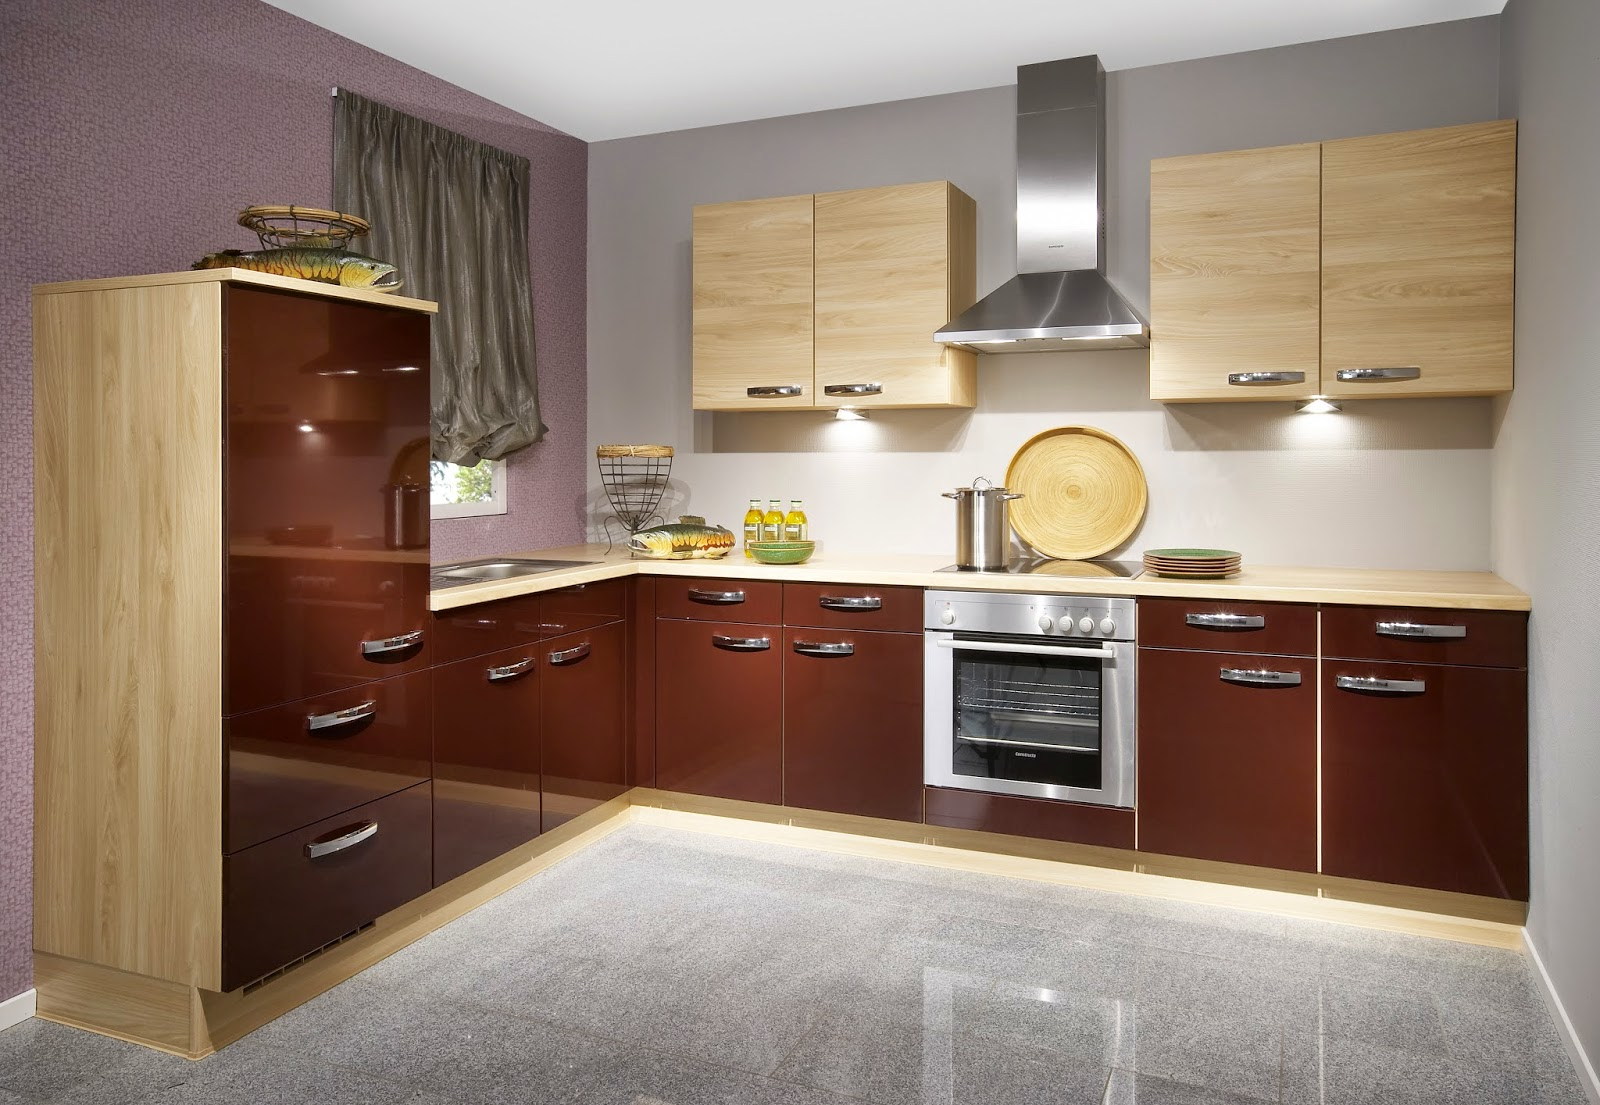 Warna Coklat Muda Kombinasi Warna Cat Dapur Wallpaper Dinding